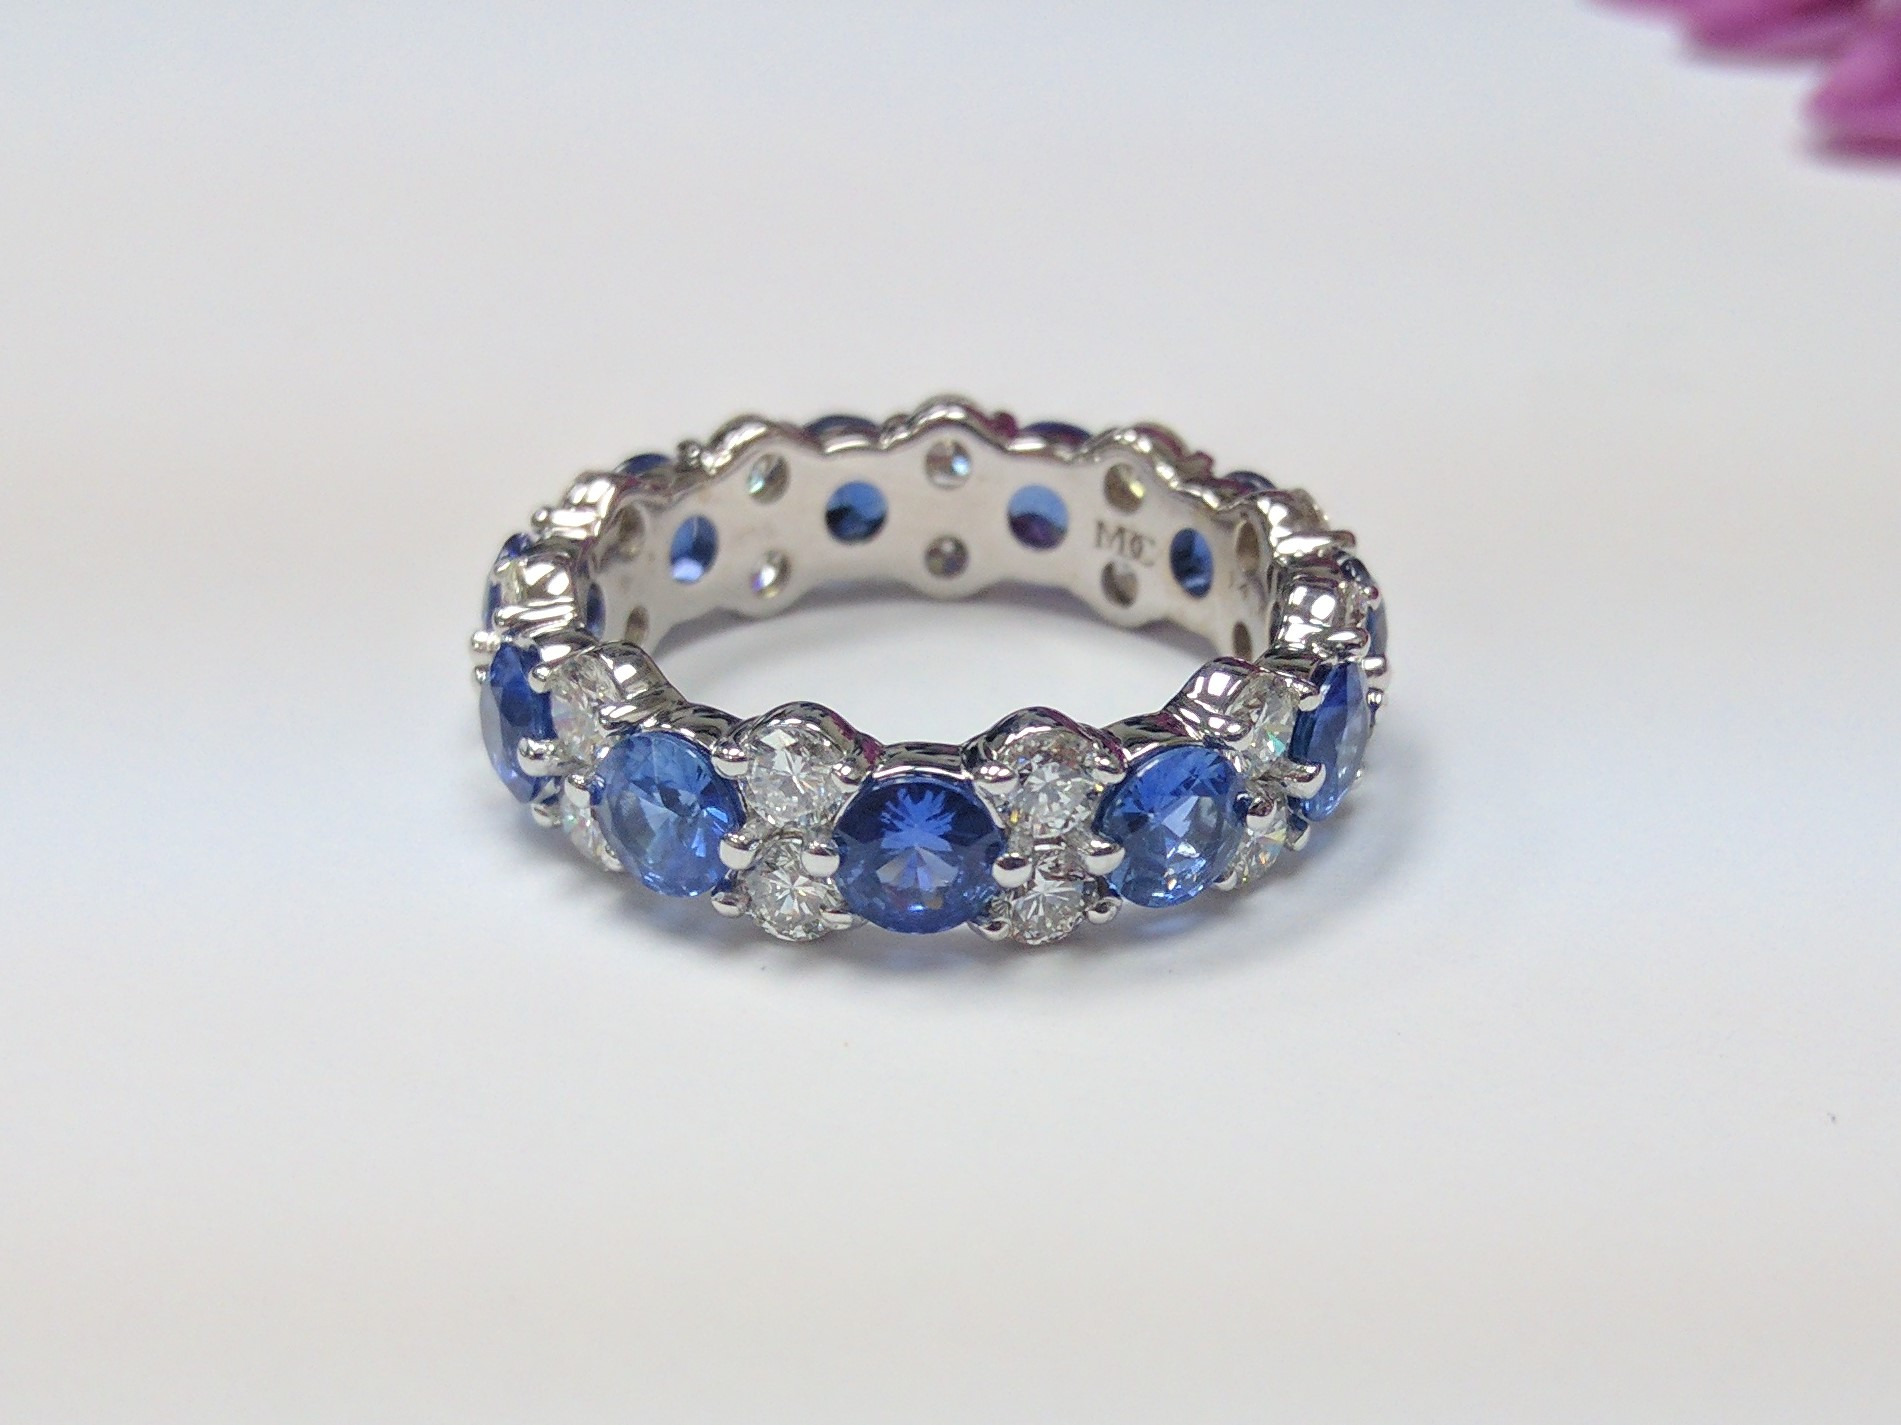 Garland Alternating Blue Sapphires & Round Cut Diamond Eternity Band, 5ct tcw.